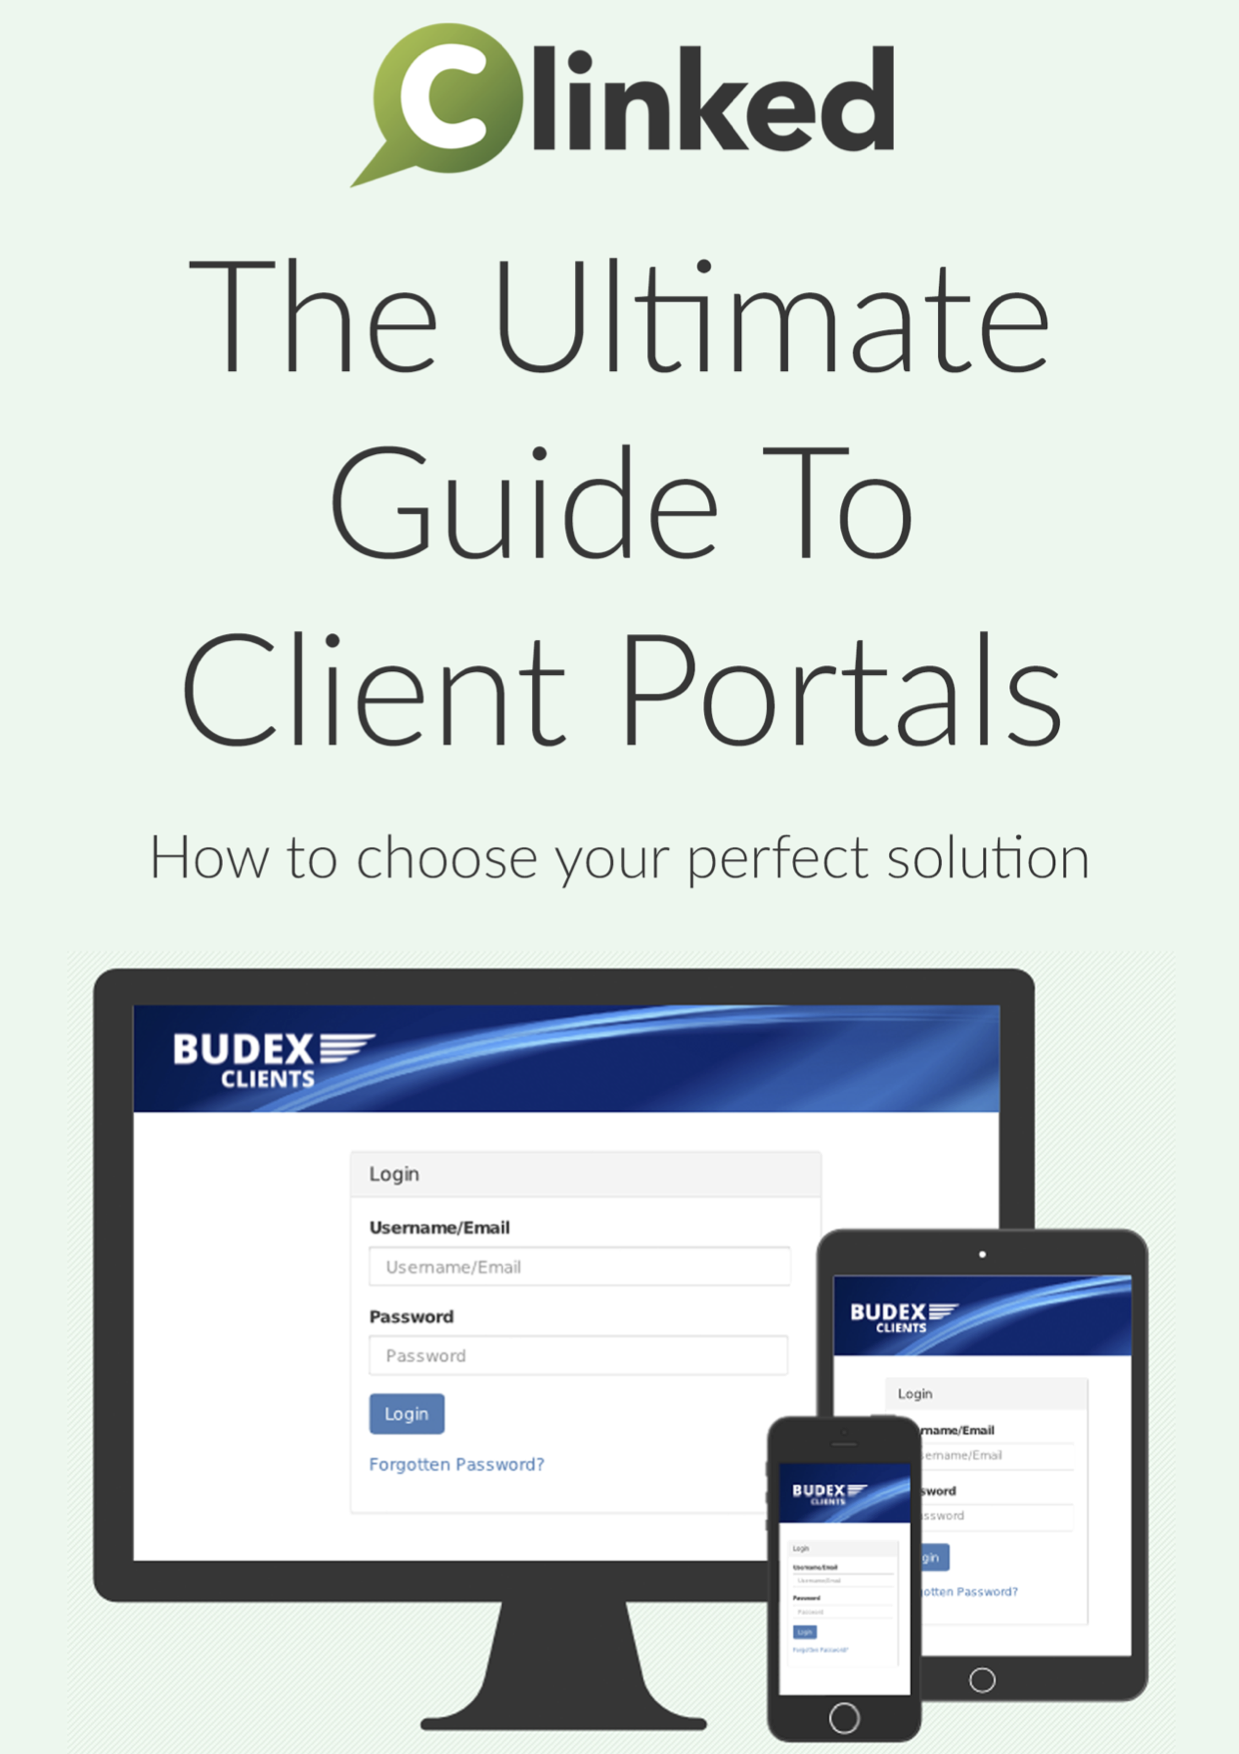 The Ultimate Guide To Client Portals covr.png